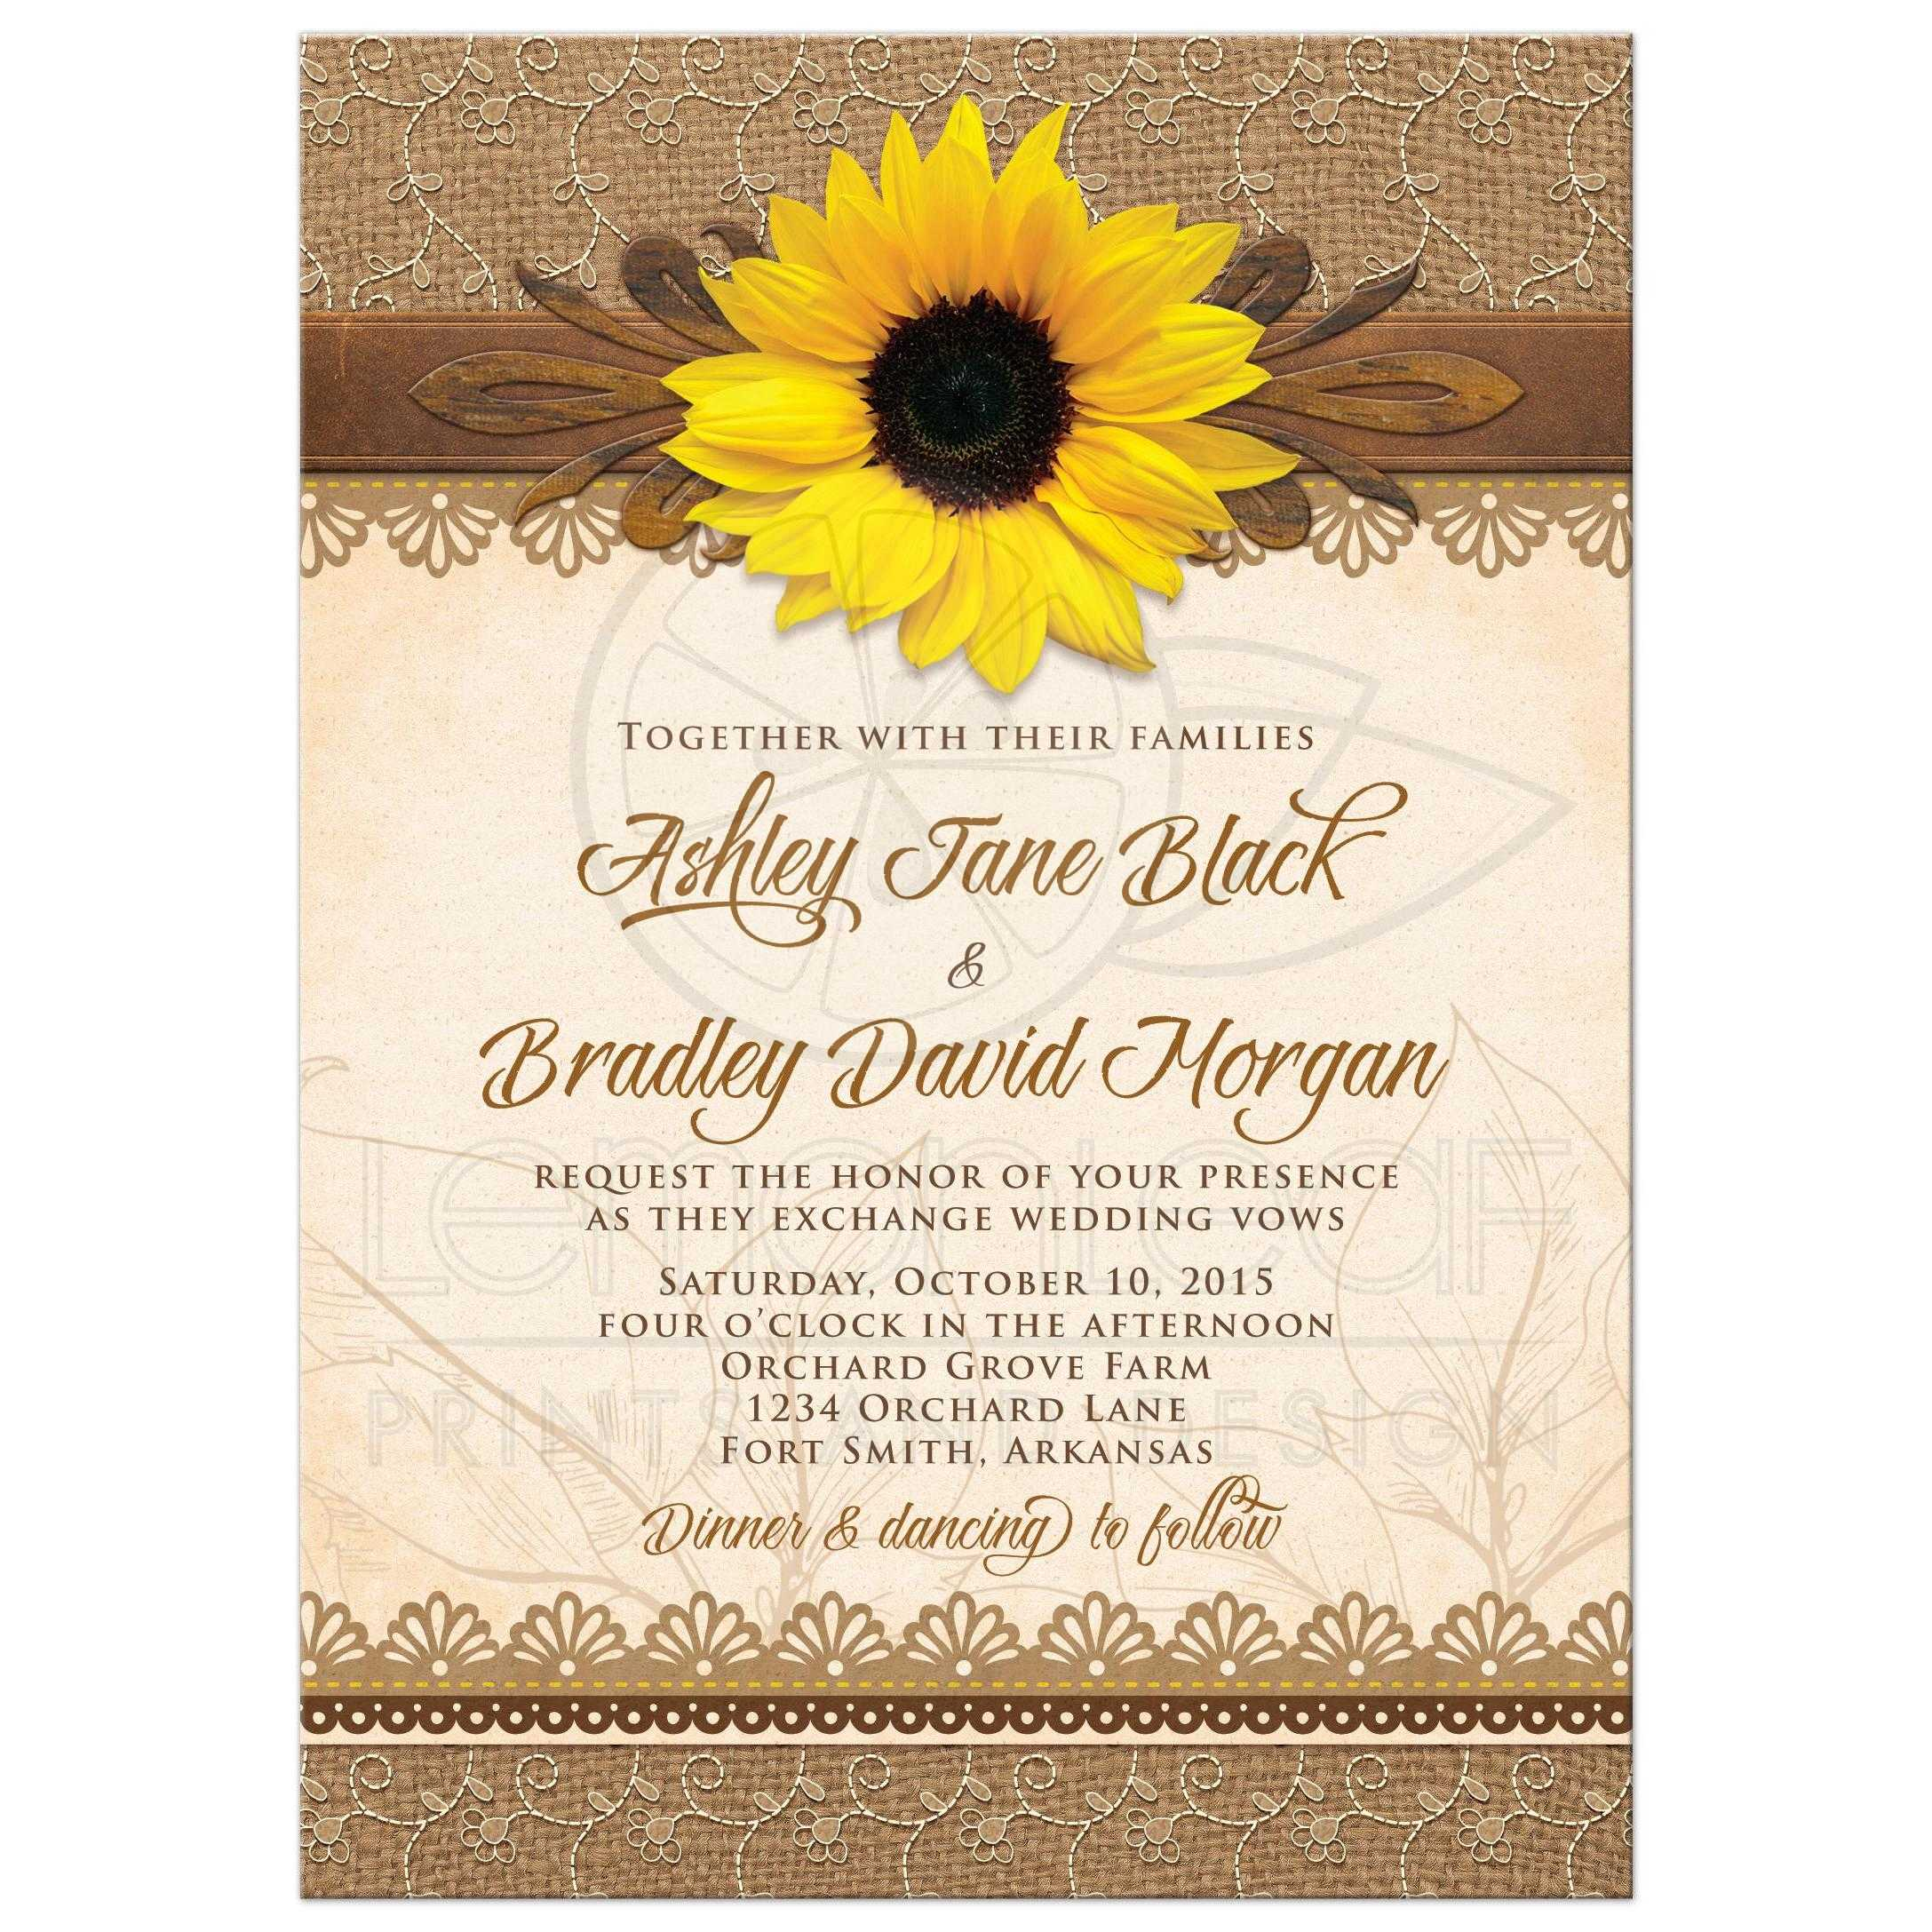 Wedding invitation rustic sunflower burlap lace wood rustic lace burlap wood and yellow sunflower country wedding invitation front monicamarmolfo Image collections